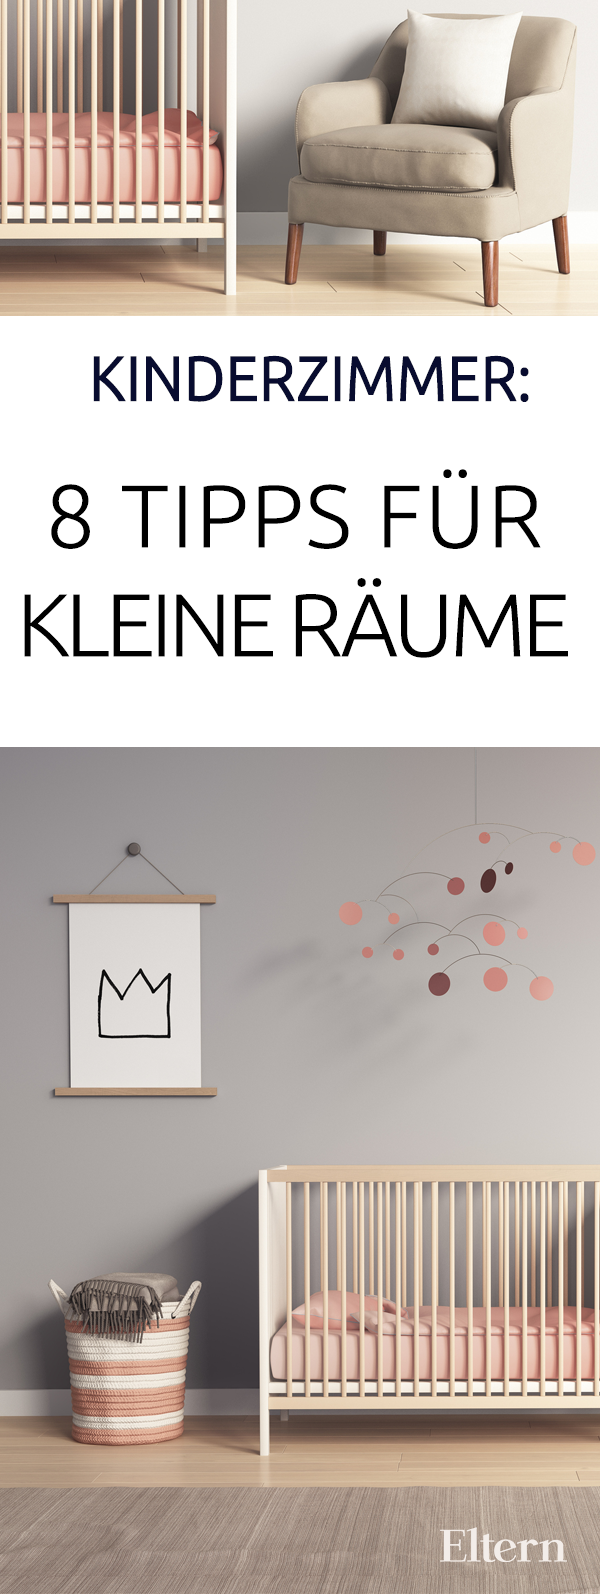 kinderzimmer acht tipps f r kleine r ume diy kinderzimmer pinterest crian as bela e papo. Black Bedroom Furniture Sets. Home Design Ideas